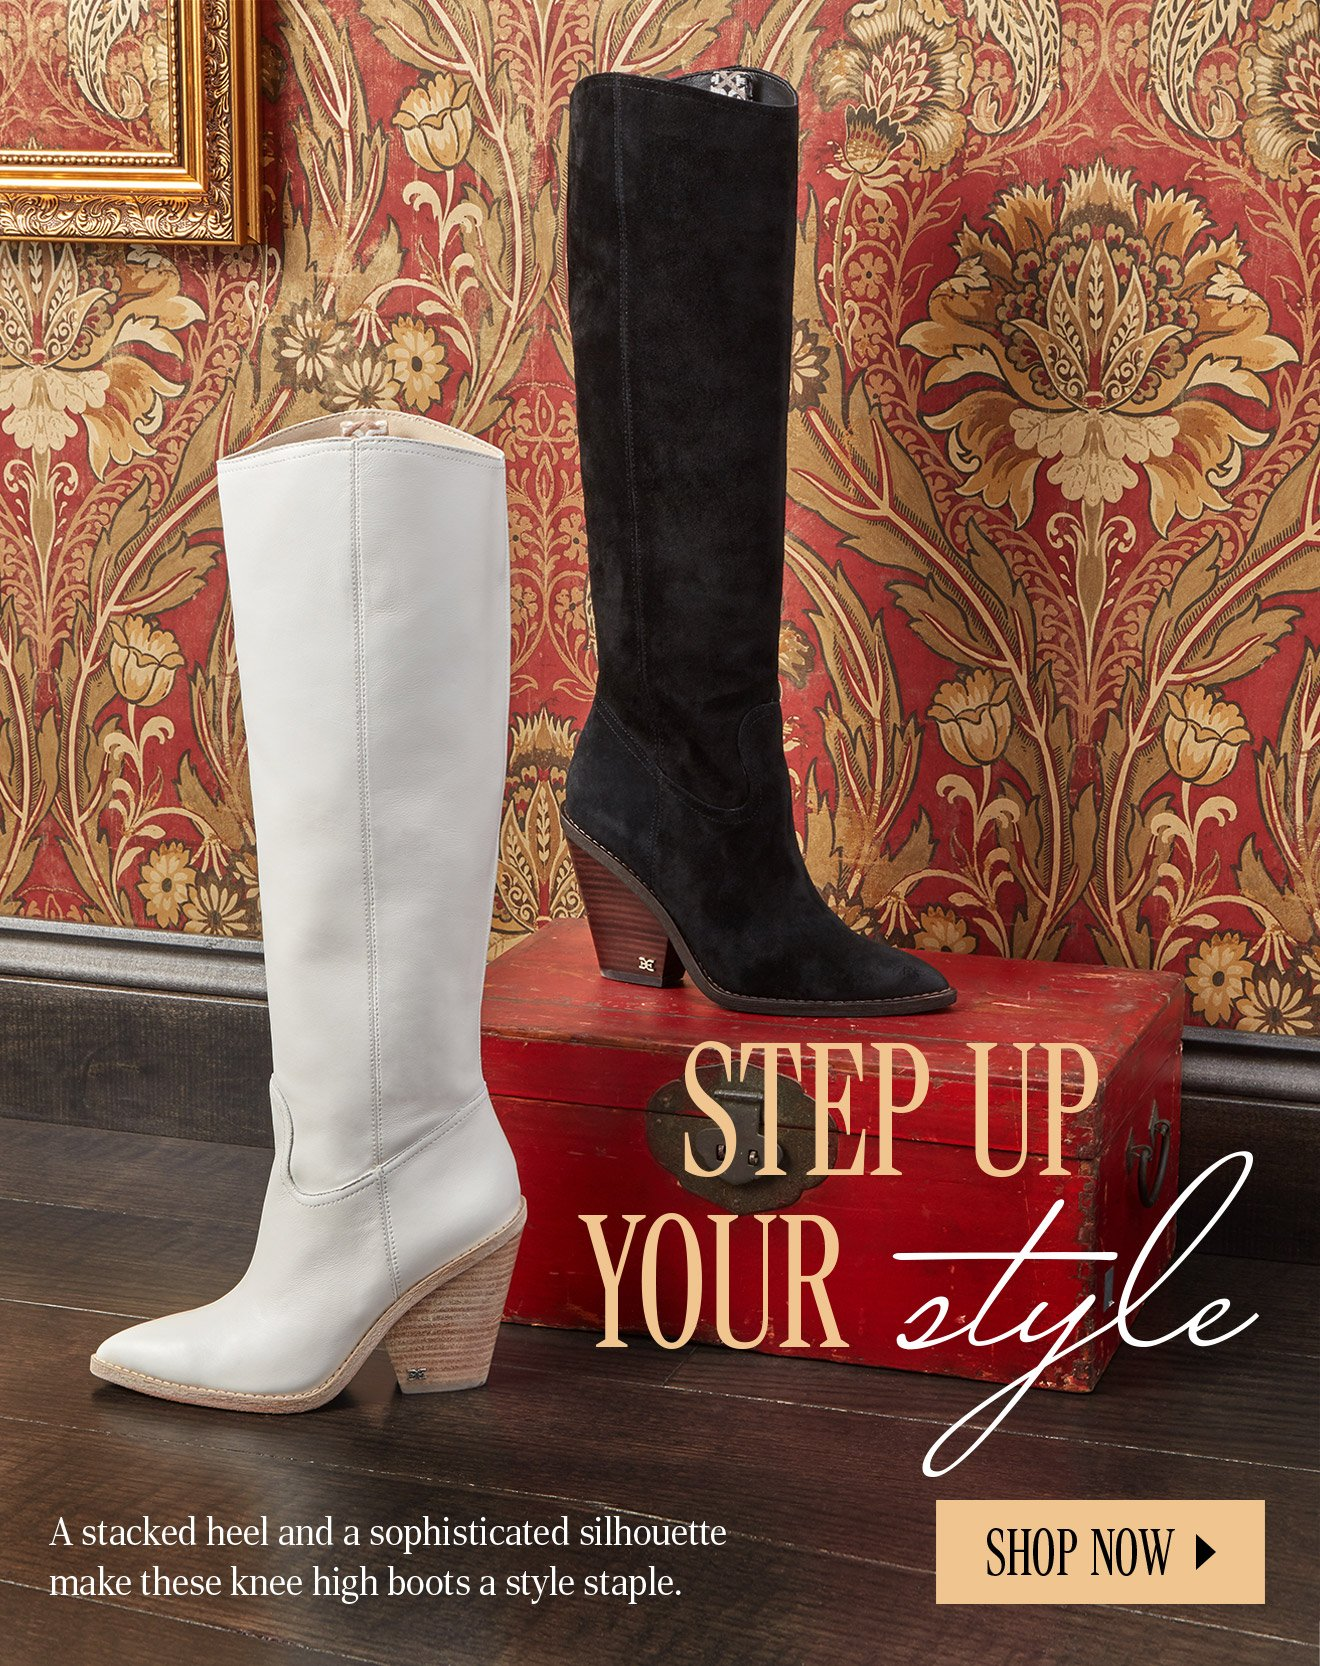 STEP UP YOU STYLE. A stacked heel and a sophisticated silhouette make these knee high boots a style staple.  SHOP NOW.